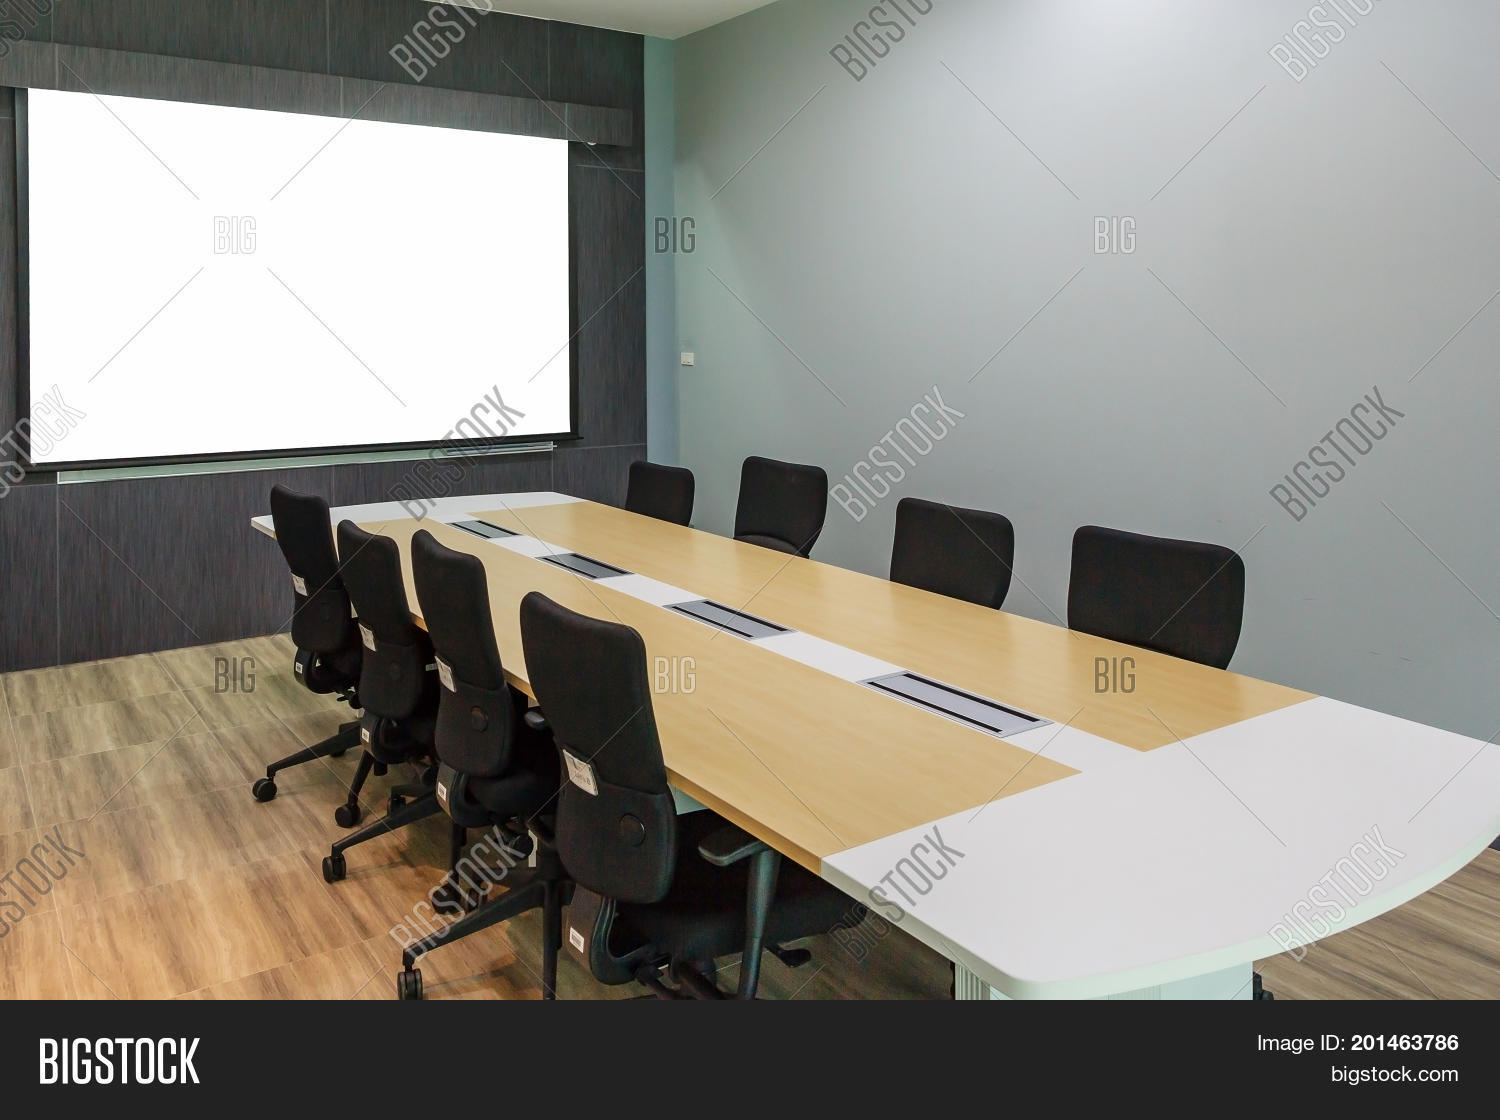 Blank Projection Screen In Meeting Room With Conference Table Modern Interior Background